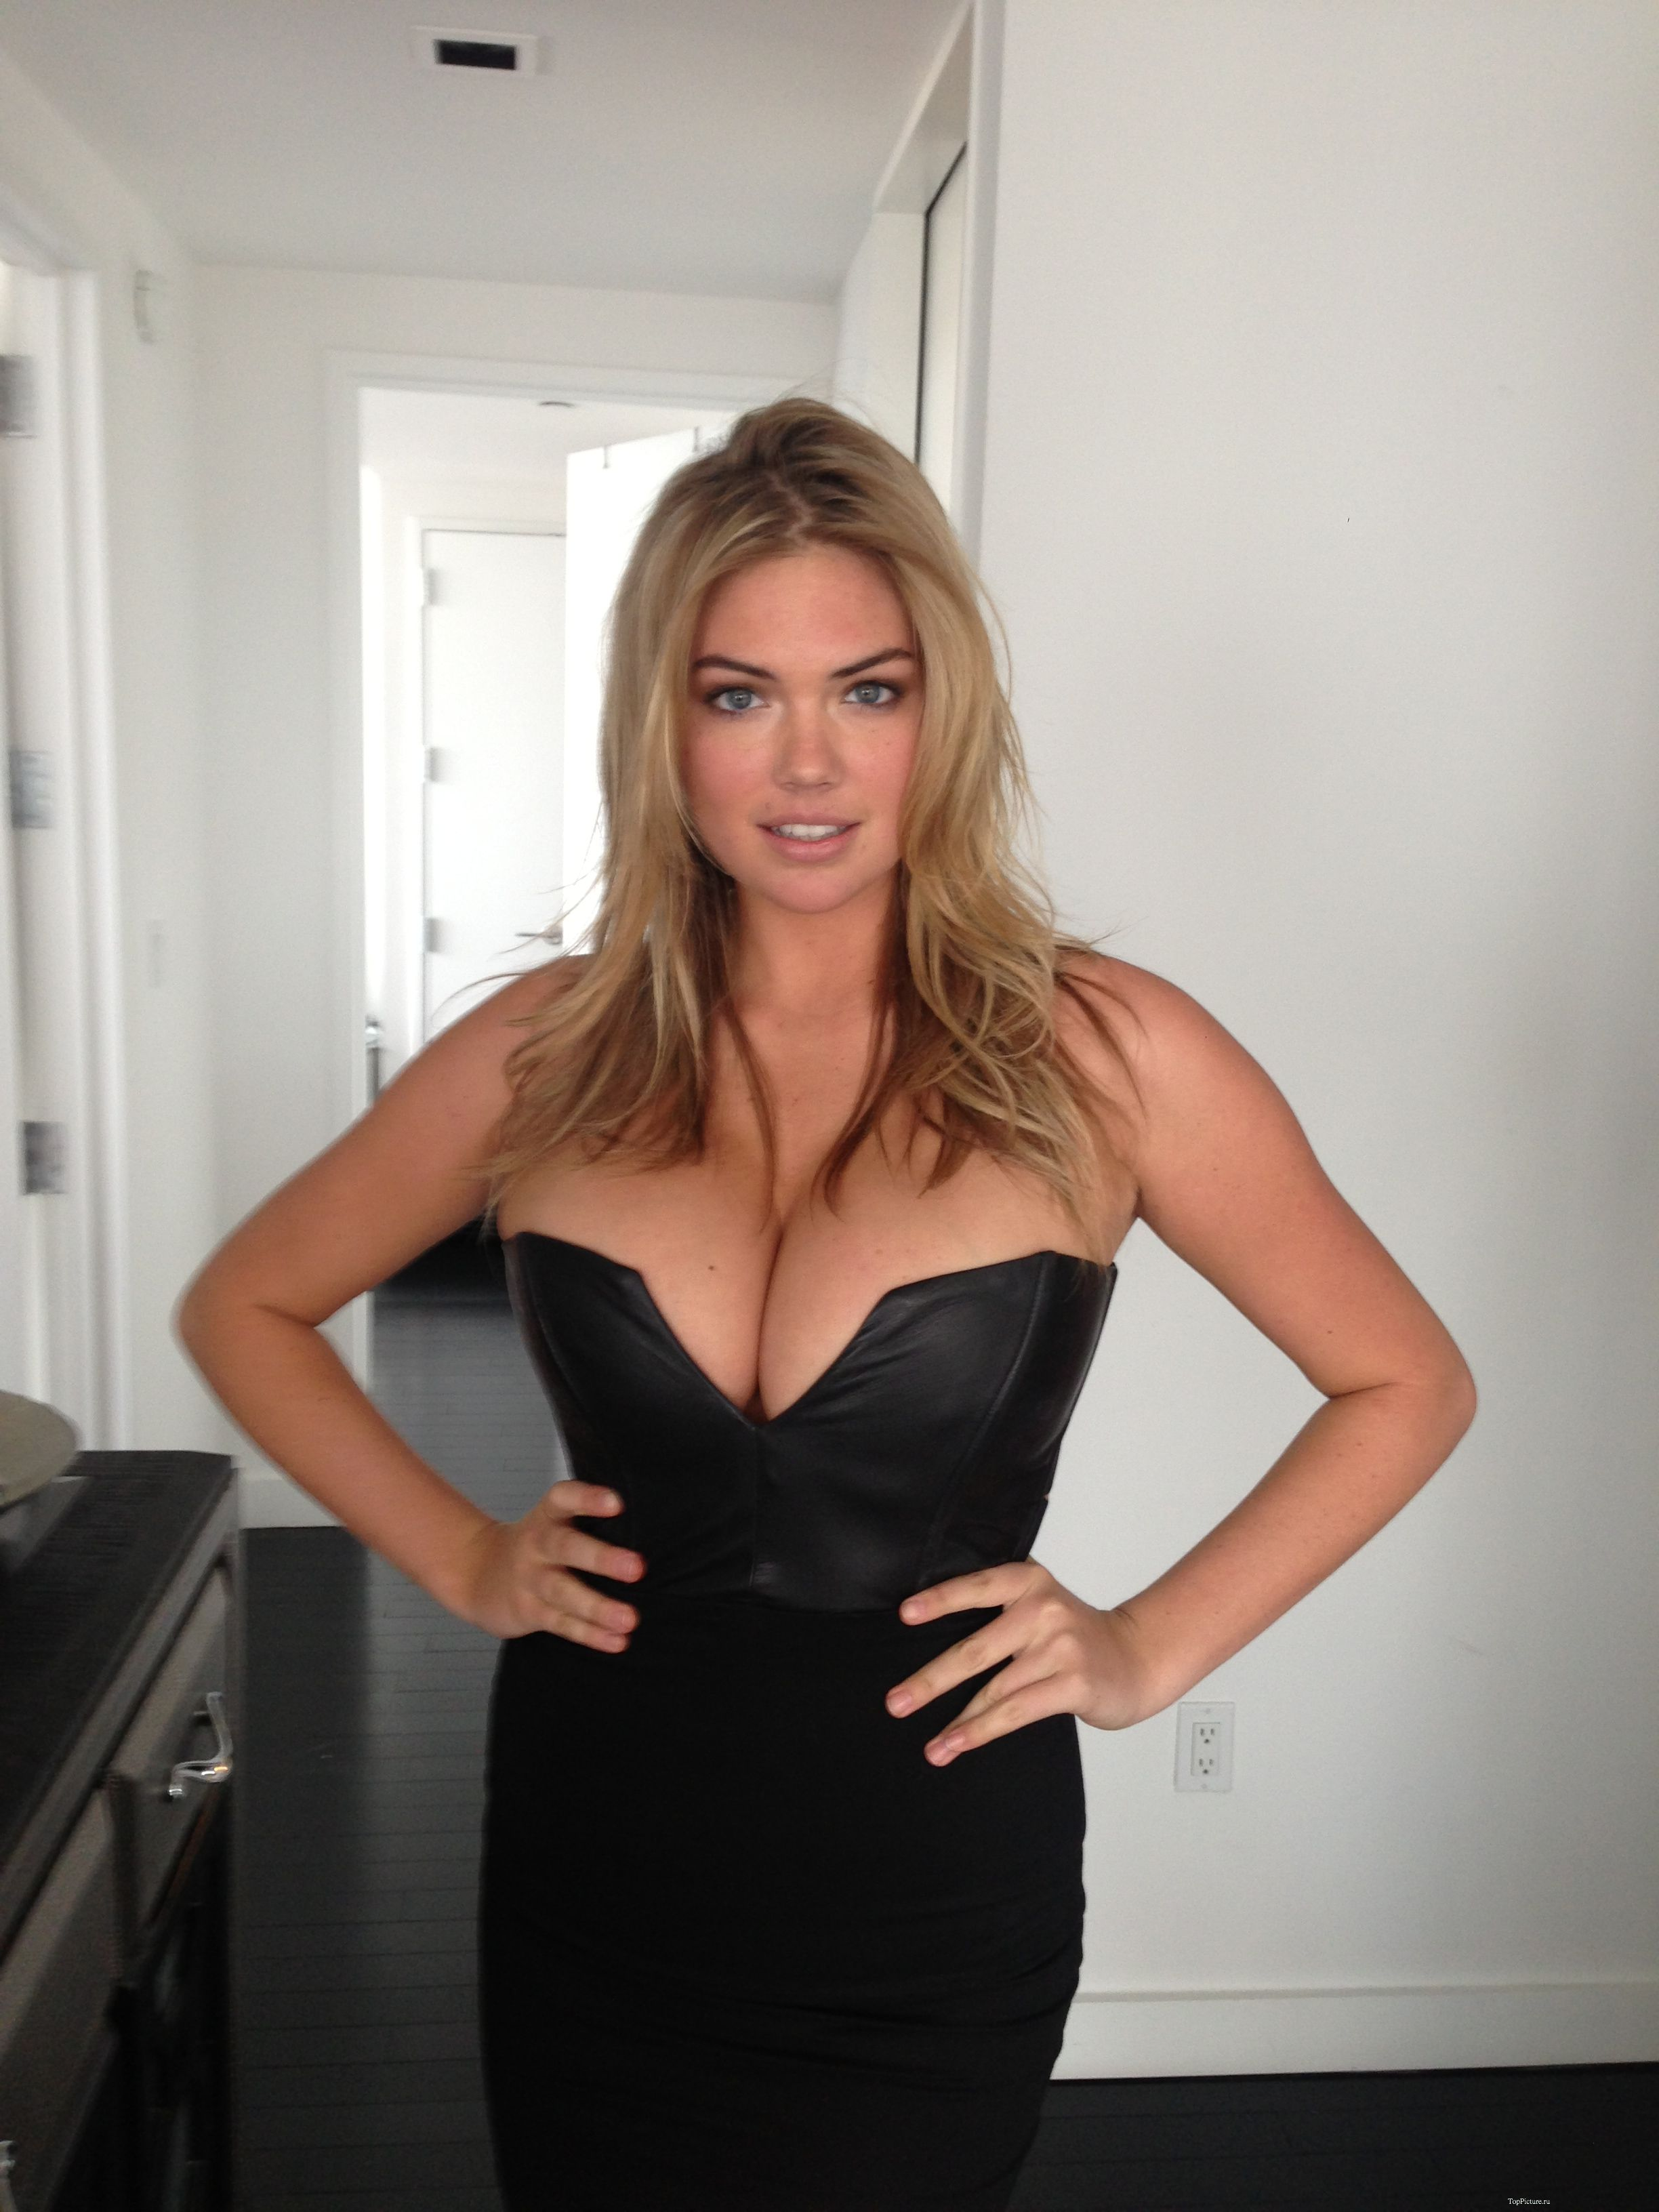 Sex photo of busty hot model Kate Upton 31 photo